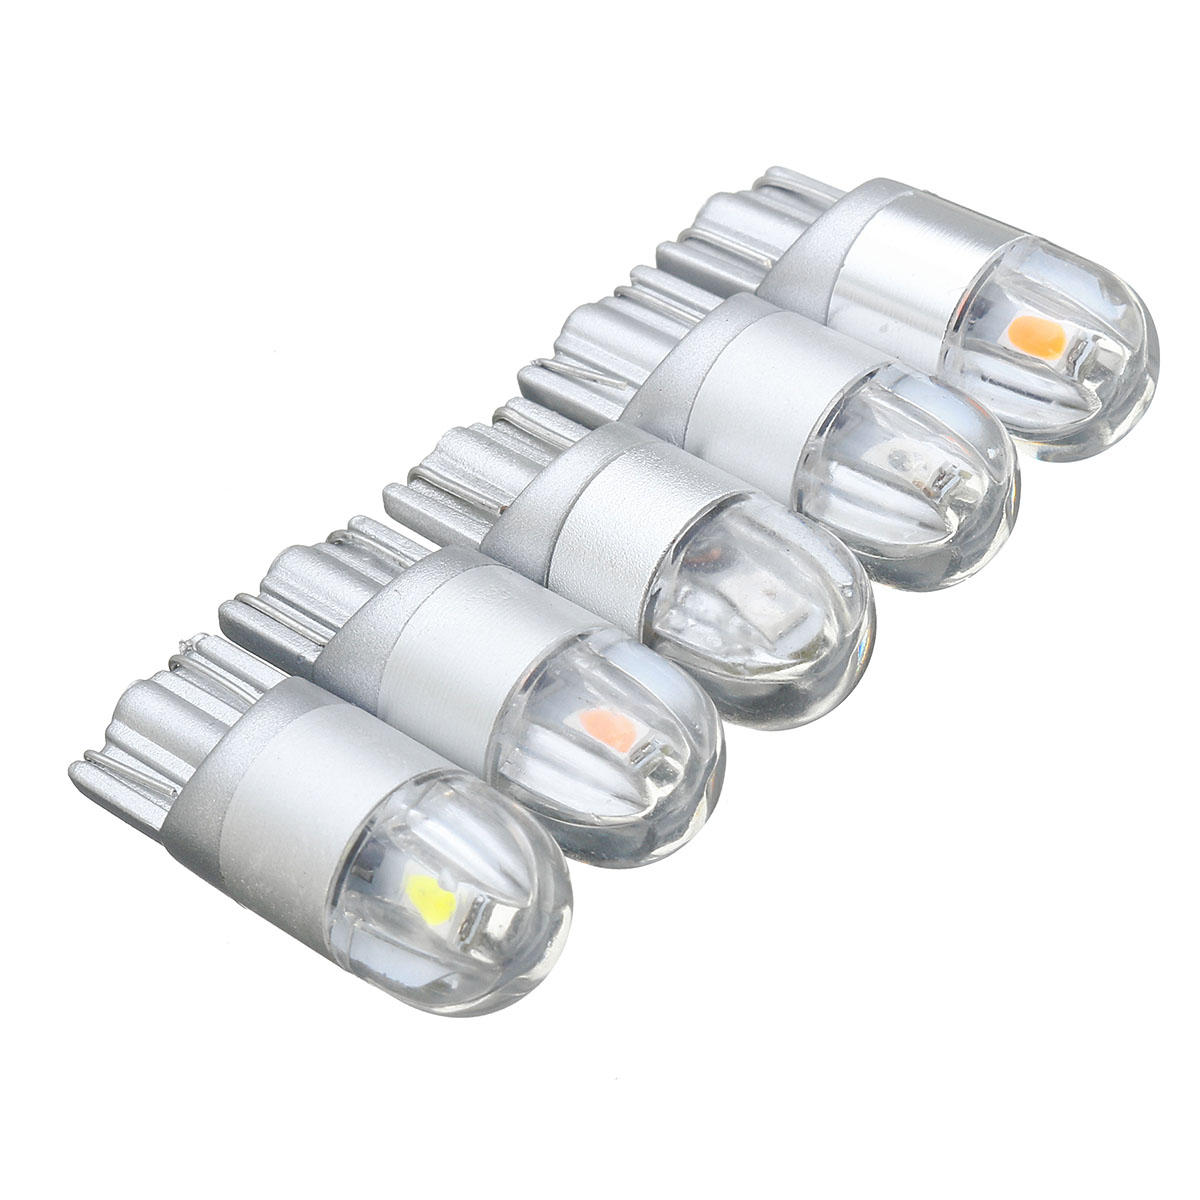 12v 5w 12v T10 168 194 5w Led Bulbs Car Interior Reading Light Side Lamp Super Bright